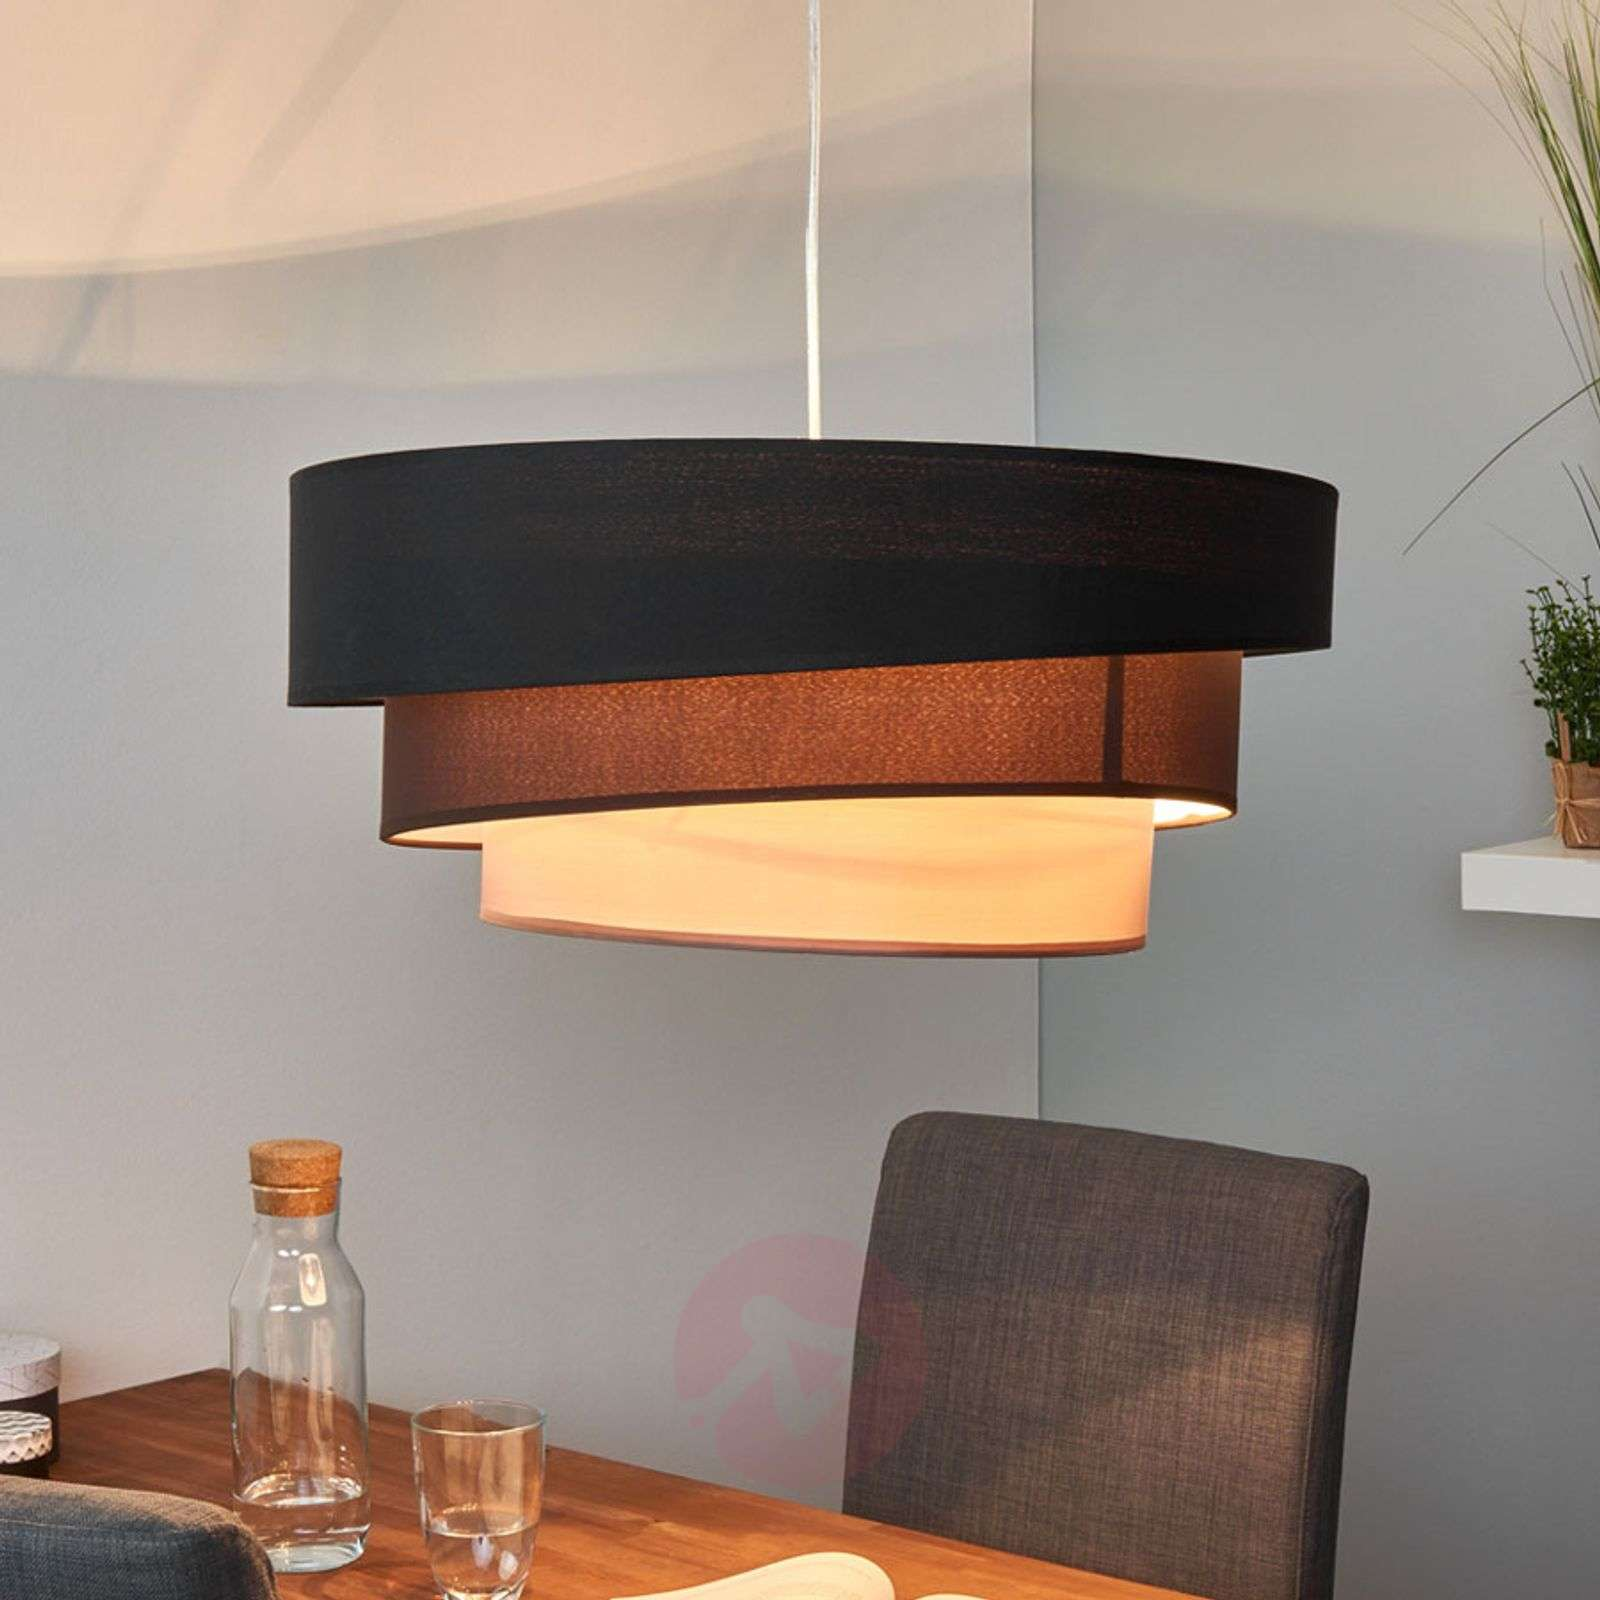 Dark pendant lamp Melia in black and brown-9639032-02